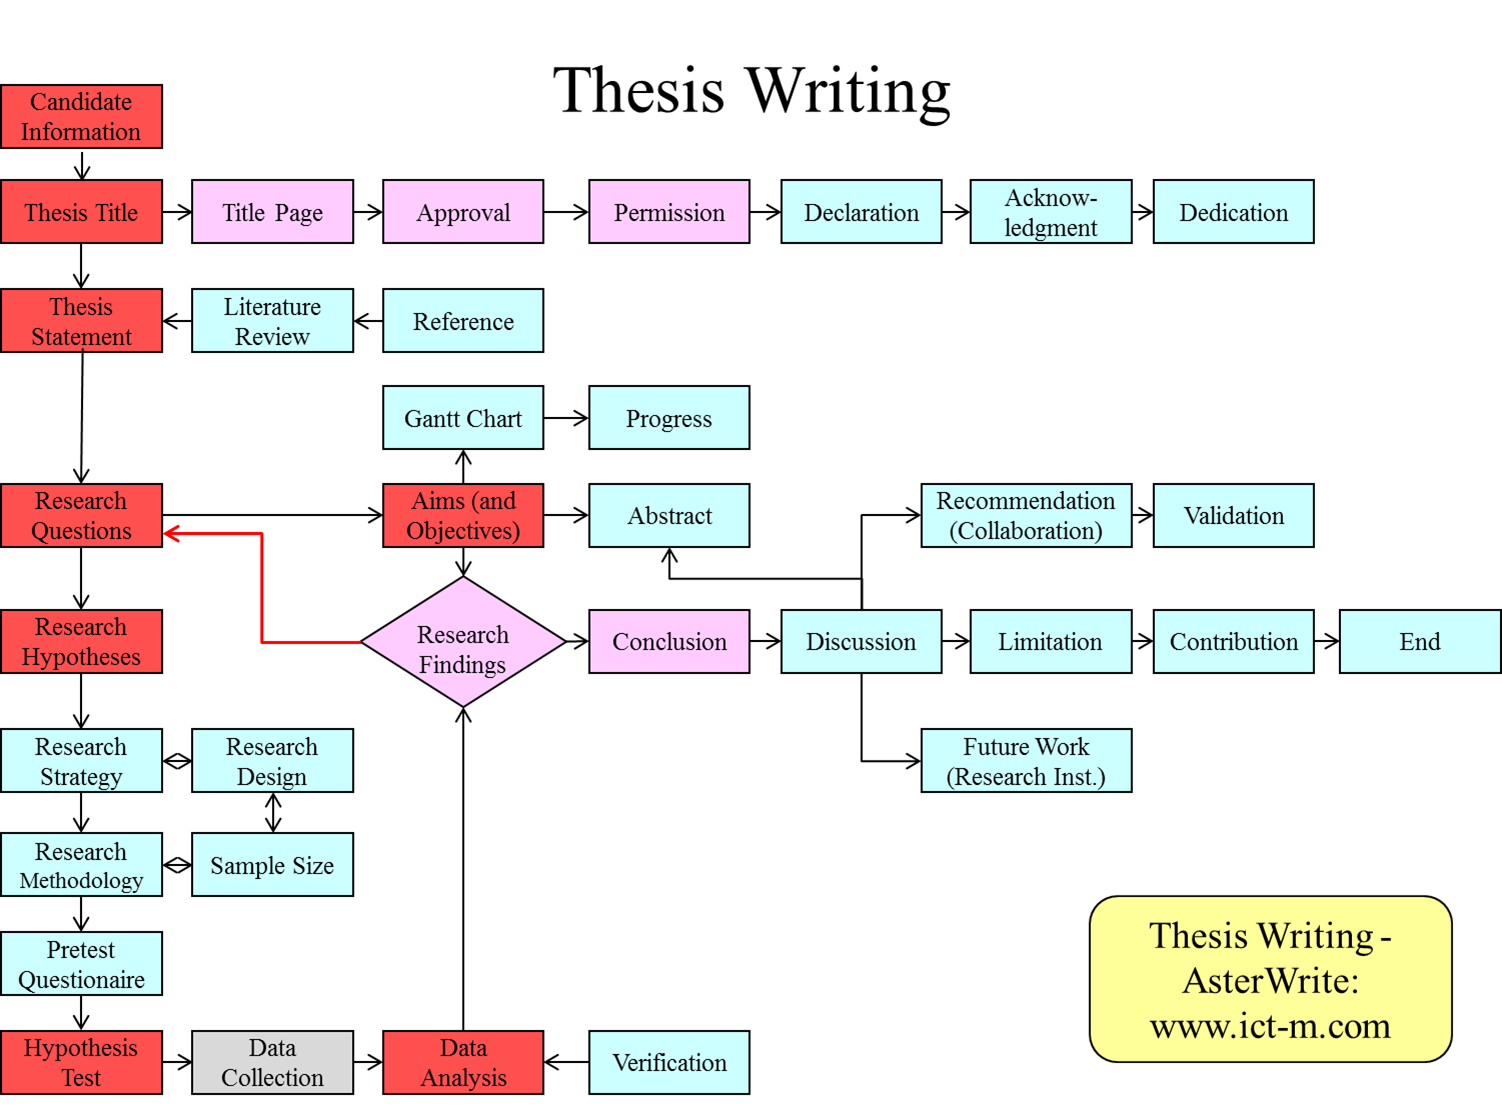 Thesis Writing Asterwrite Asterwrite Helps You To Create A Flow